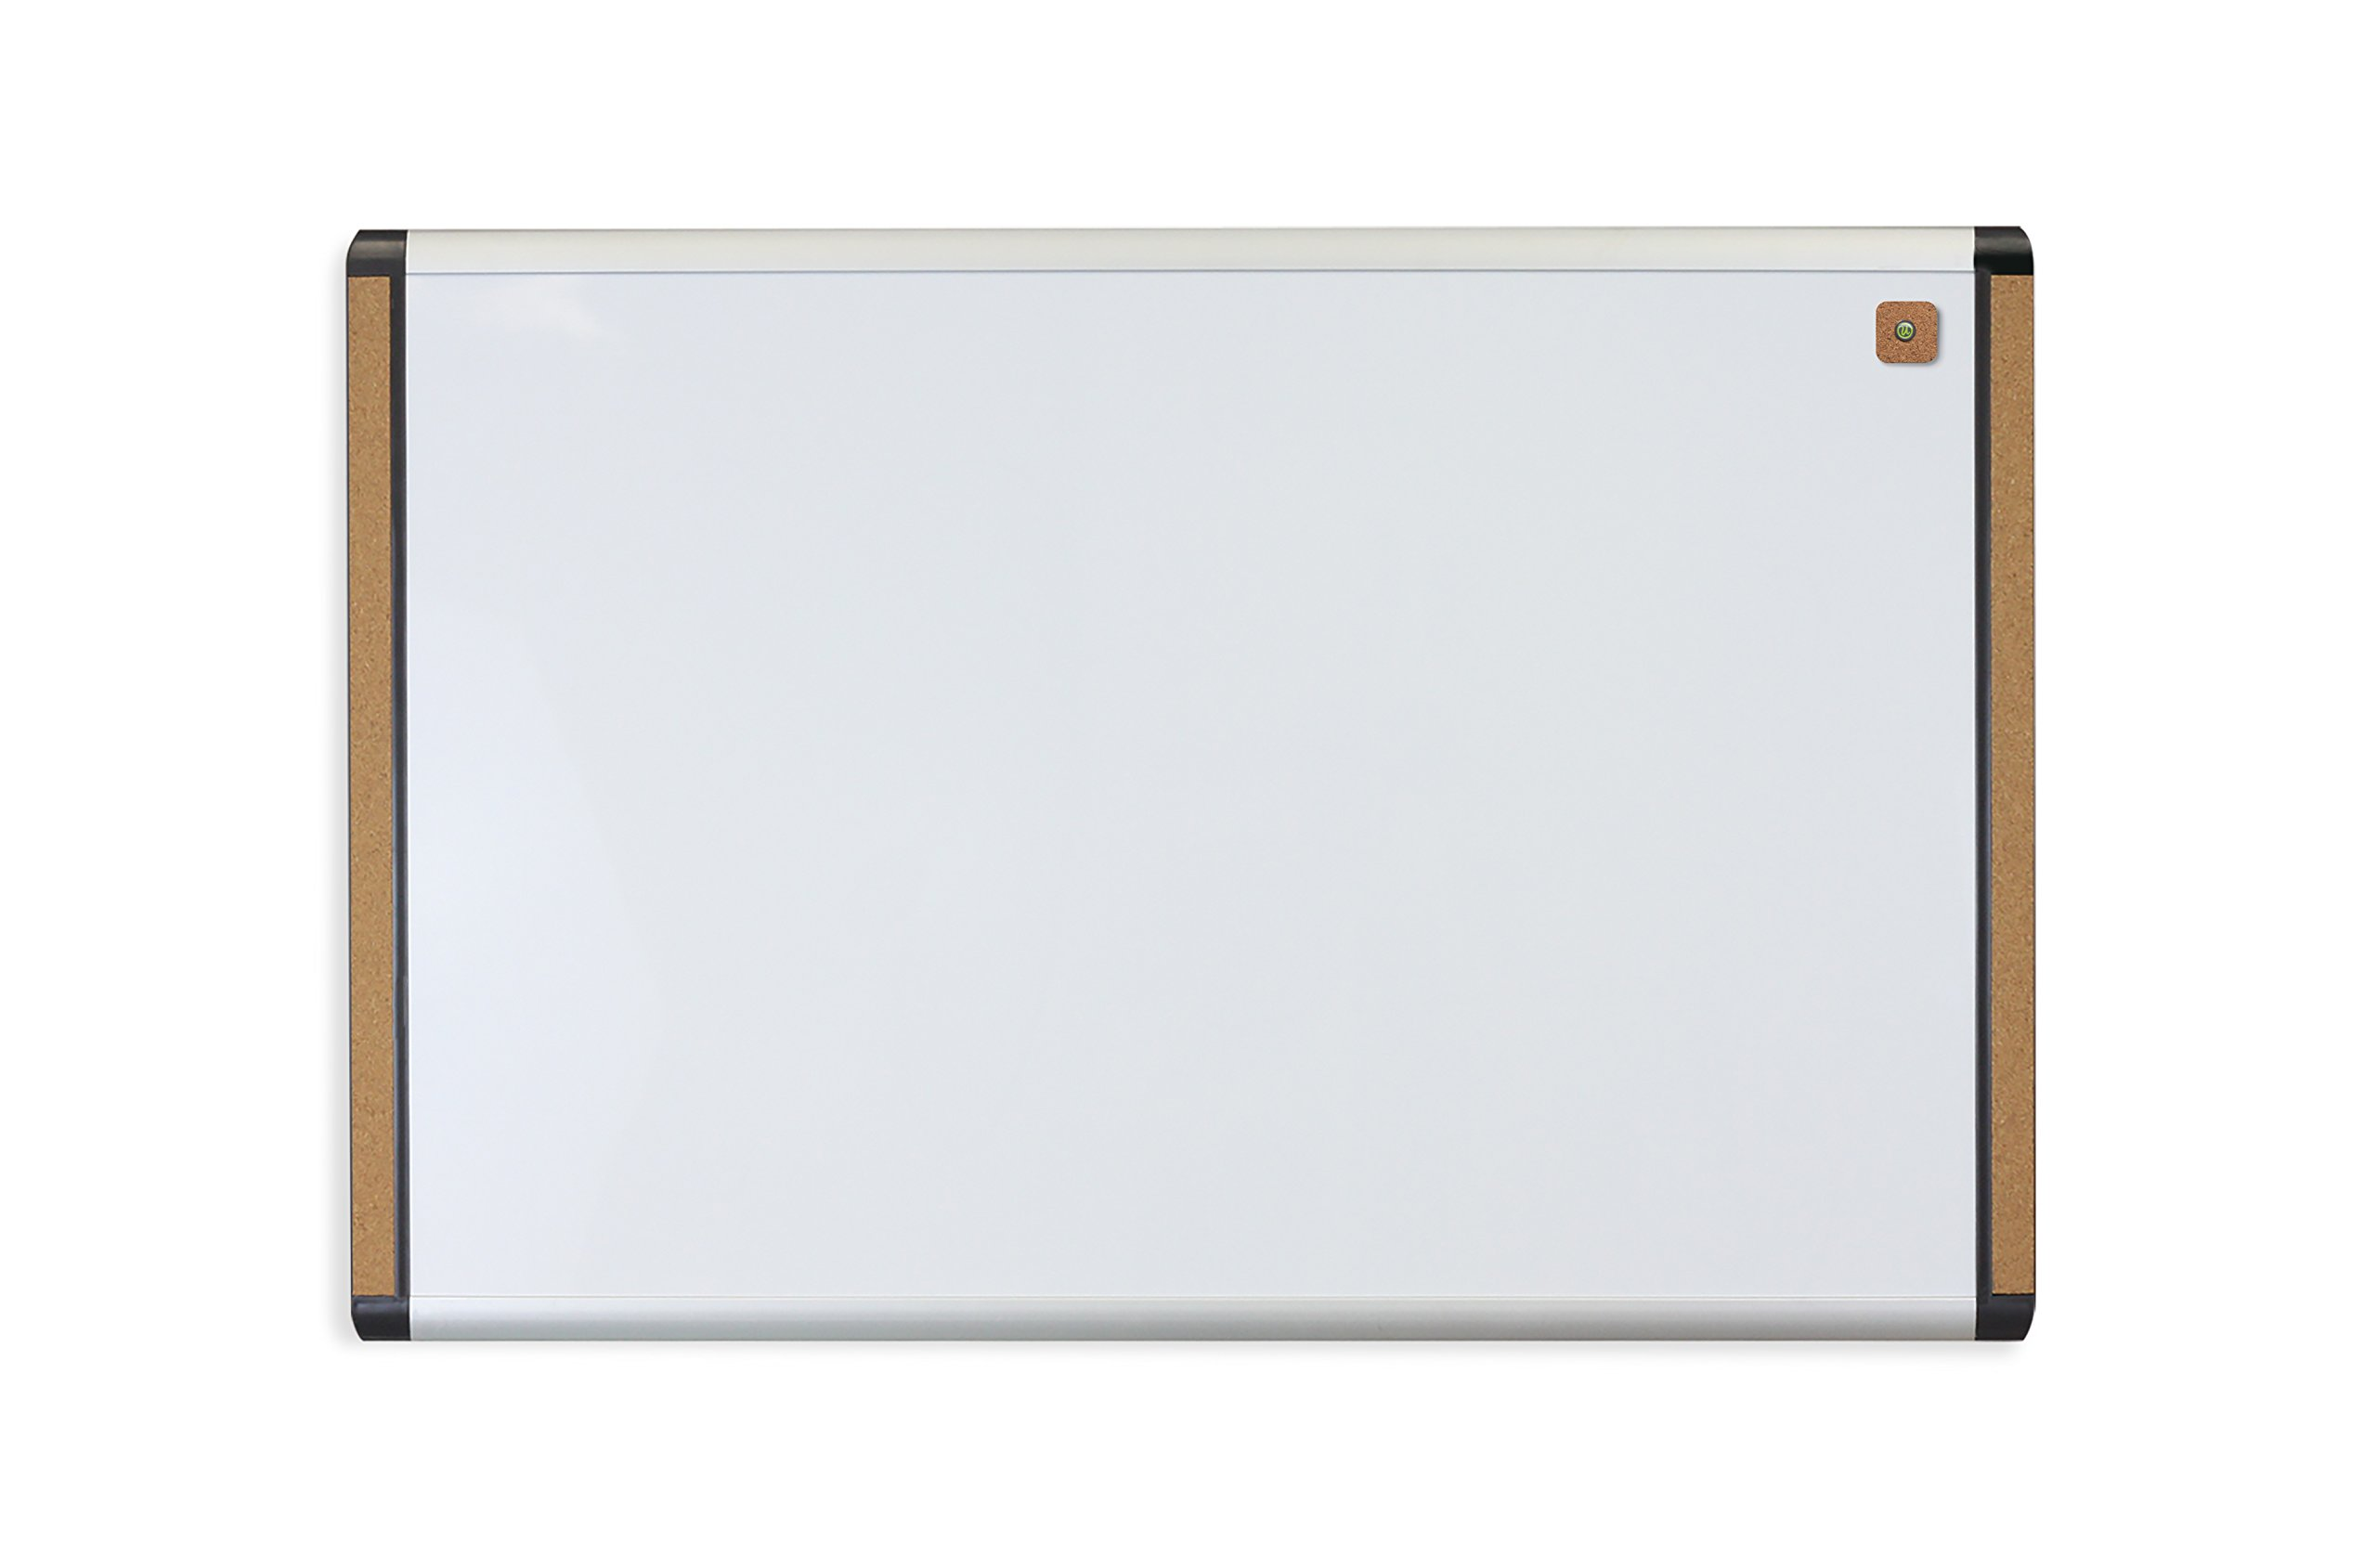 U Brands Pin-It Magnetic Dry Erase Board, 35 x 23 Inches, Black and Grey Frame